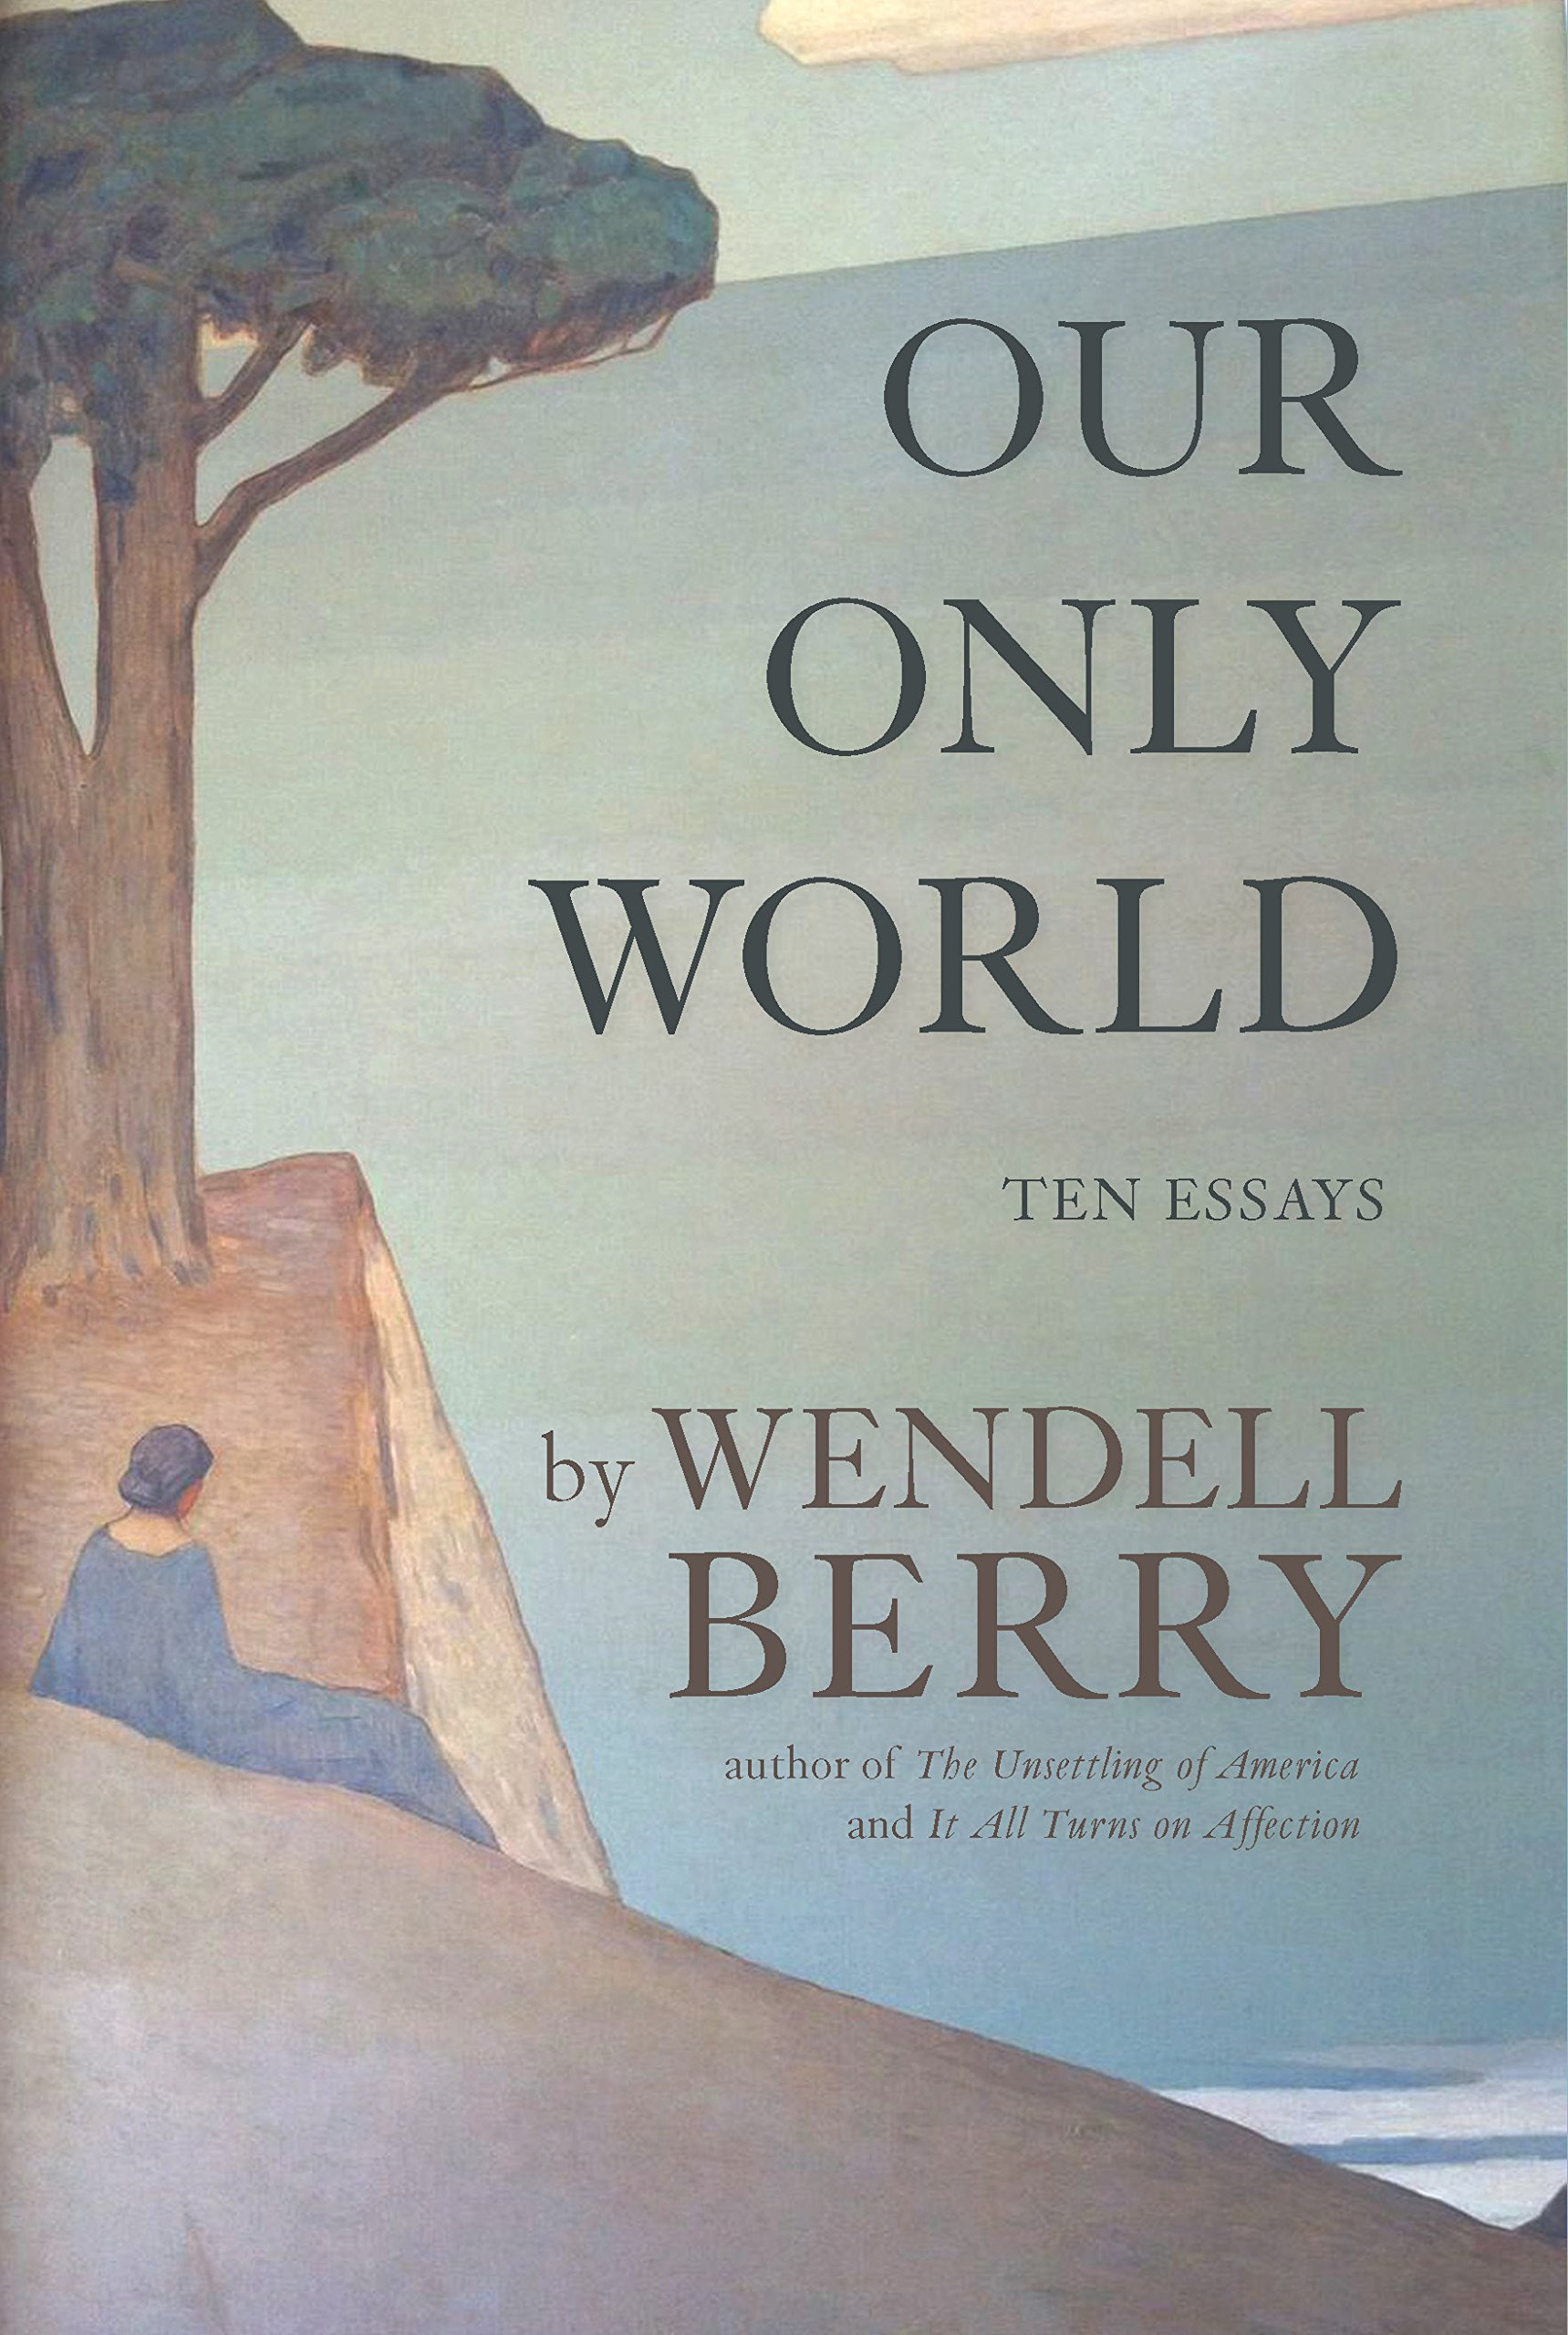 Our only world ten essays wendell berry 9781619027008 amazon com